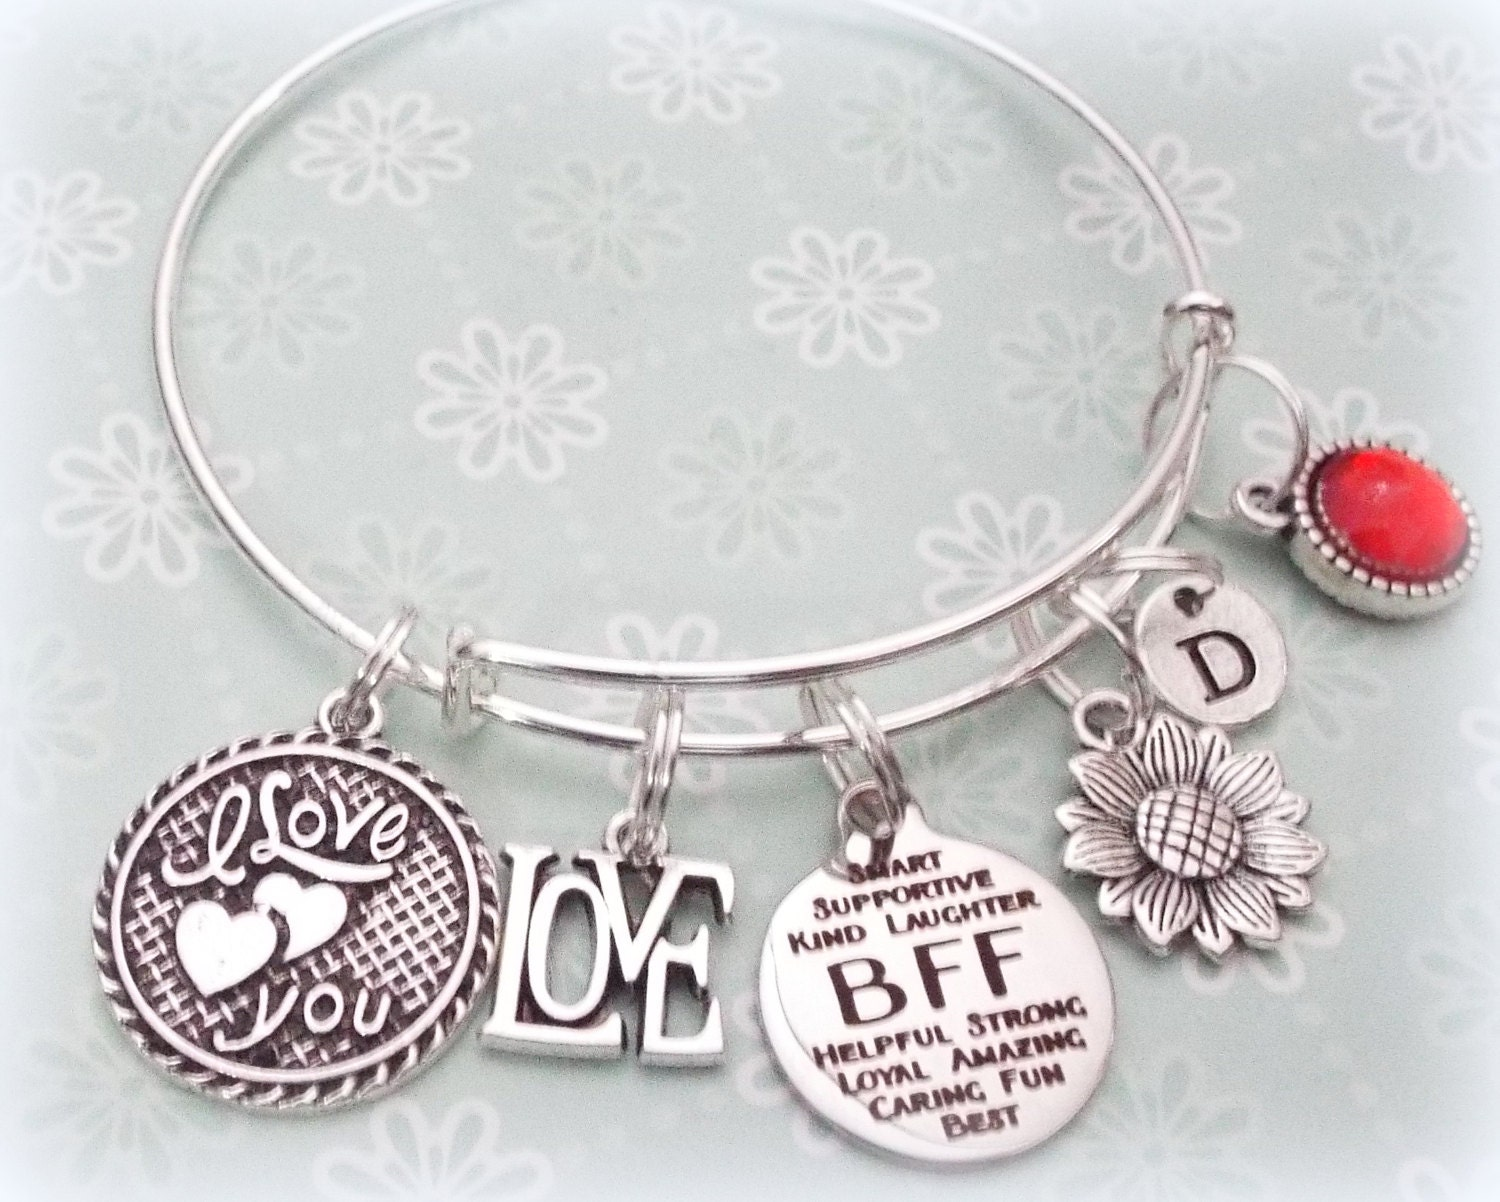 Best Friend Gift, Gift for BFF, Valentine Gift for BFF ...